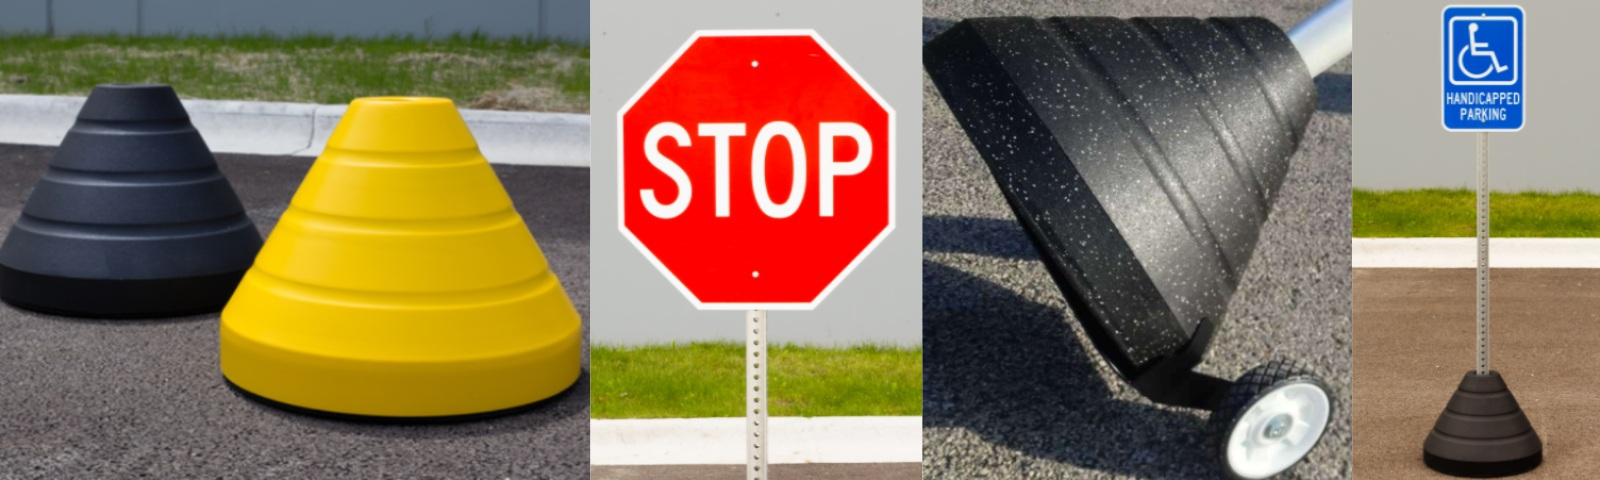 TRAFFIC & PARKING SIGN BASES